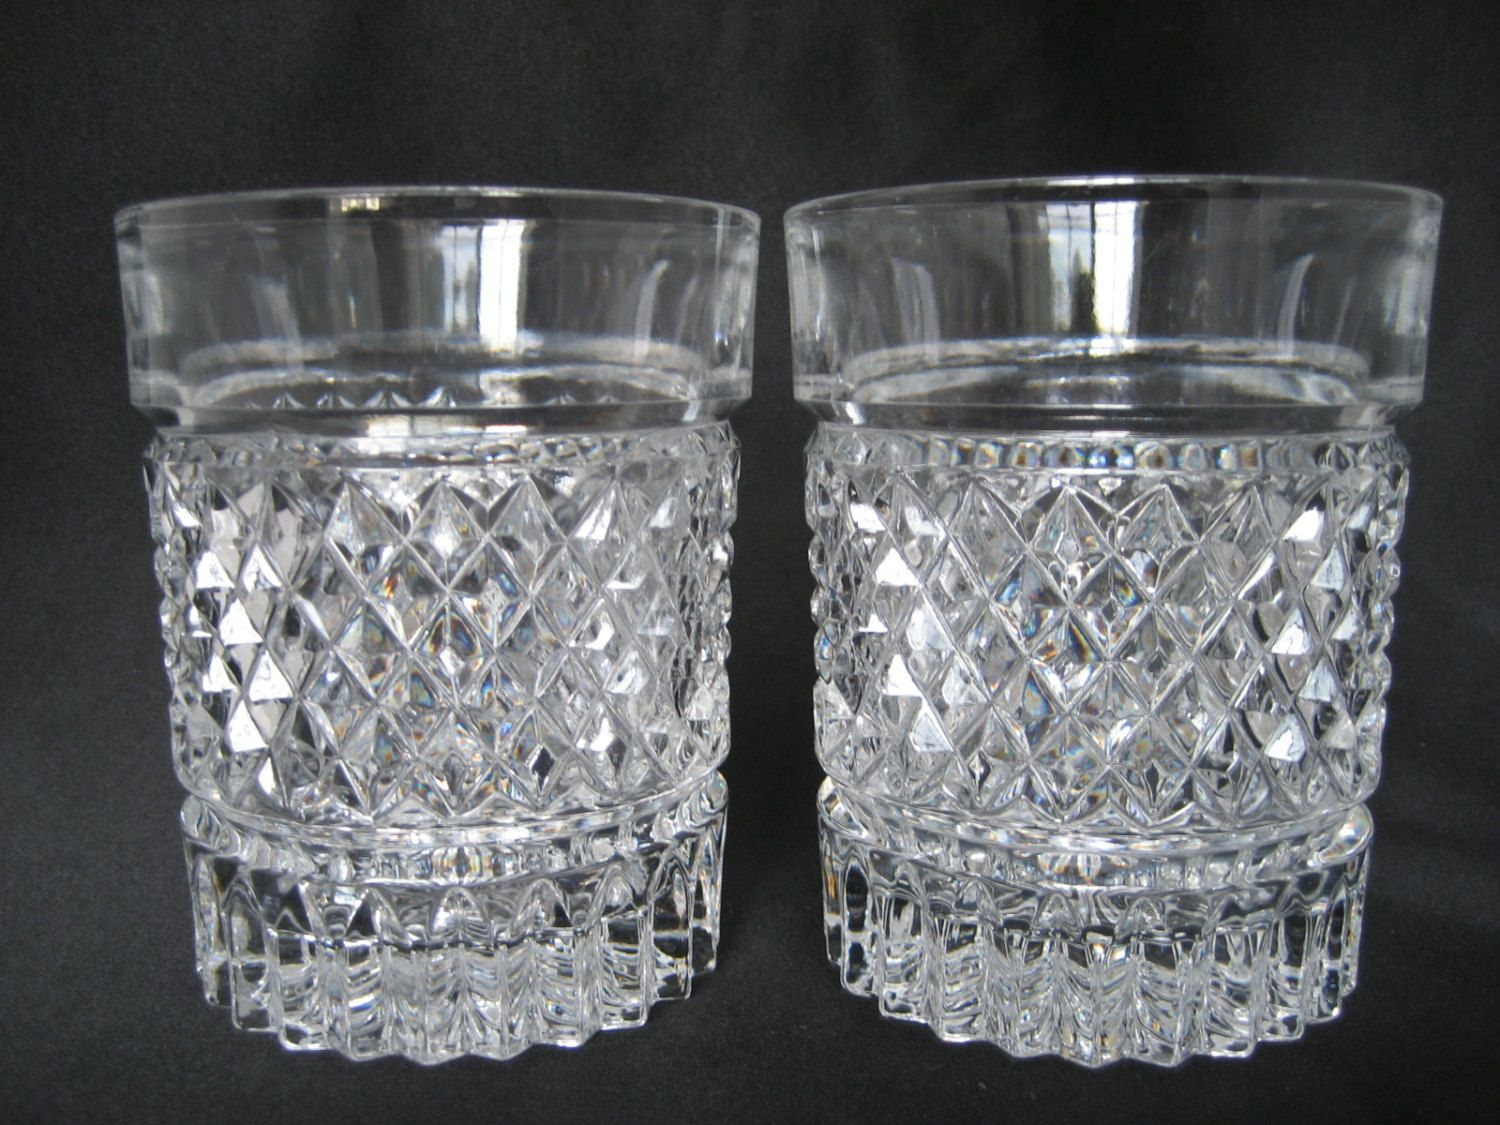 7 Oz Crystal Cut Beverage Glasses Vintage Highball Cocktail Glasses 6 pc Set